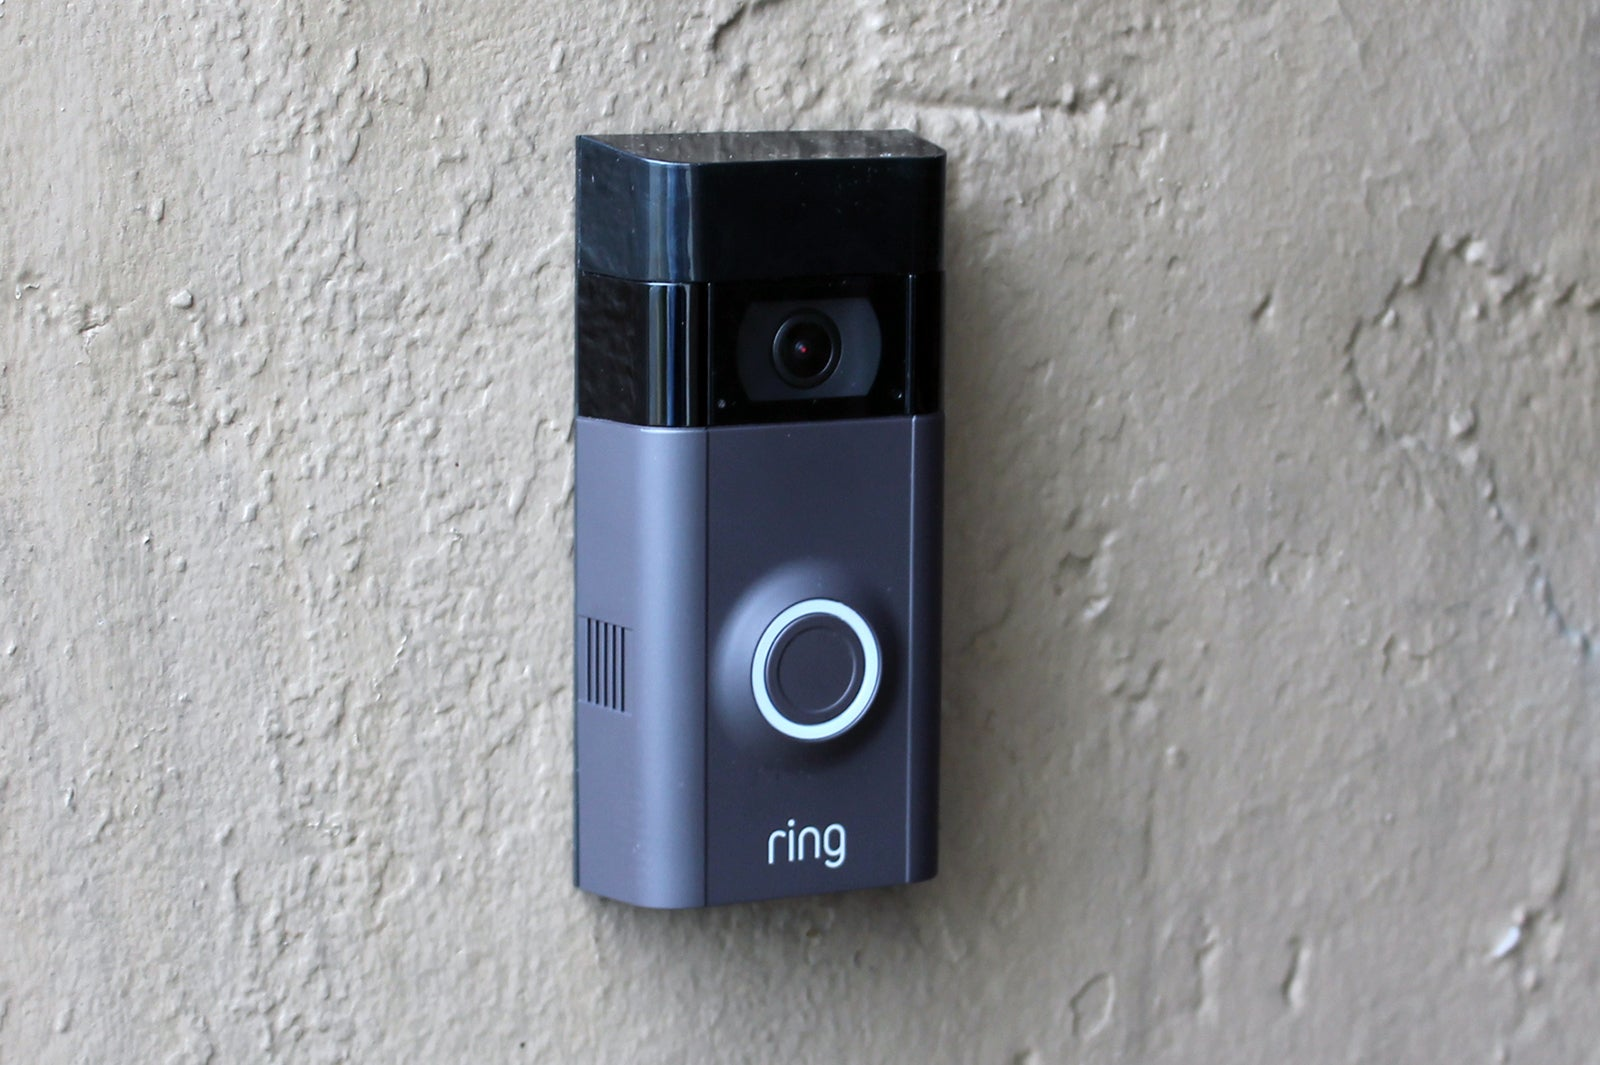 Ring Video Doorbell 2 Review Better Features New Frustrations Electronic Desing 2011 Simple Led Display Warn Battery Low Techhive